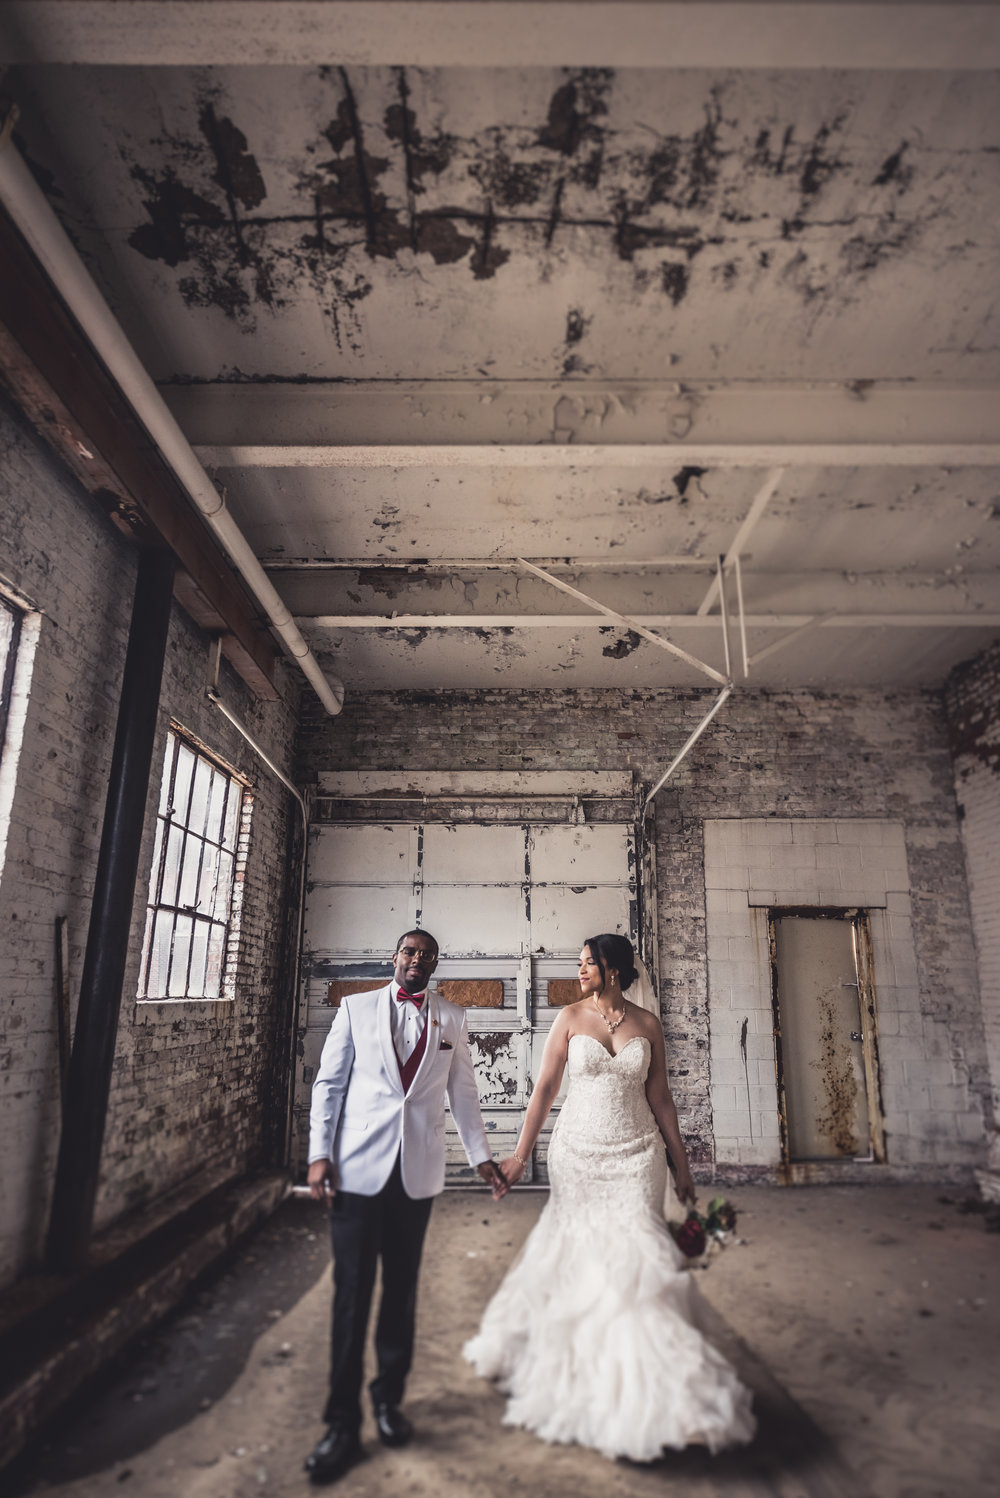 Burlington Iowa Wedding Midwest Photographer Melissa Cervantes _ Chantelle and Isaiah 320p.jpg